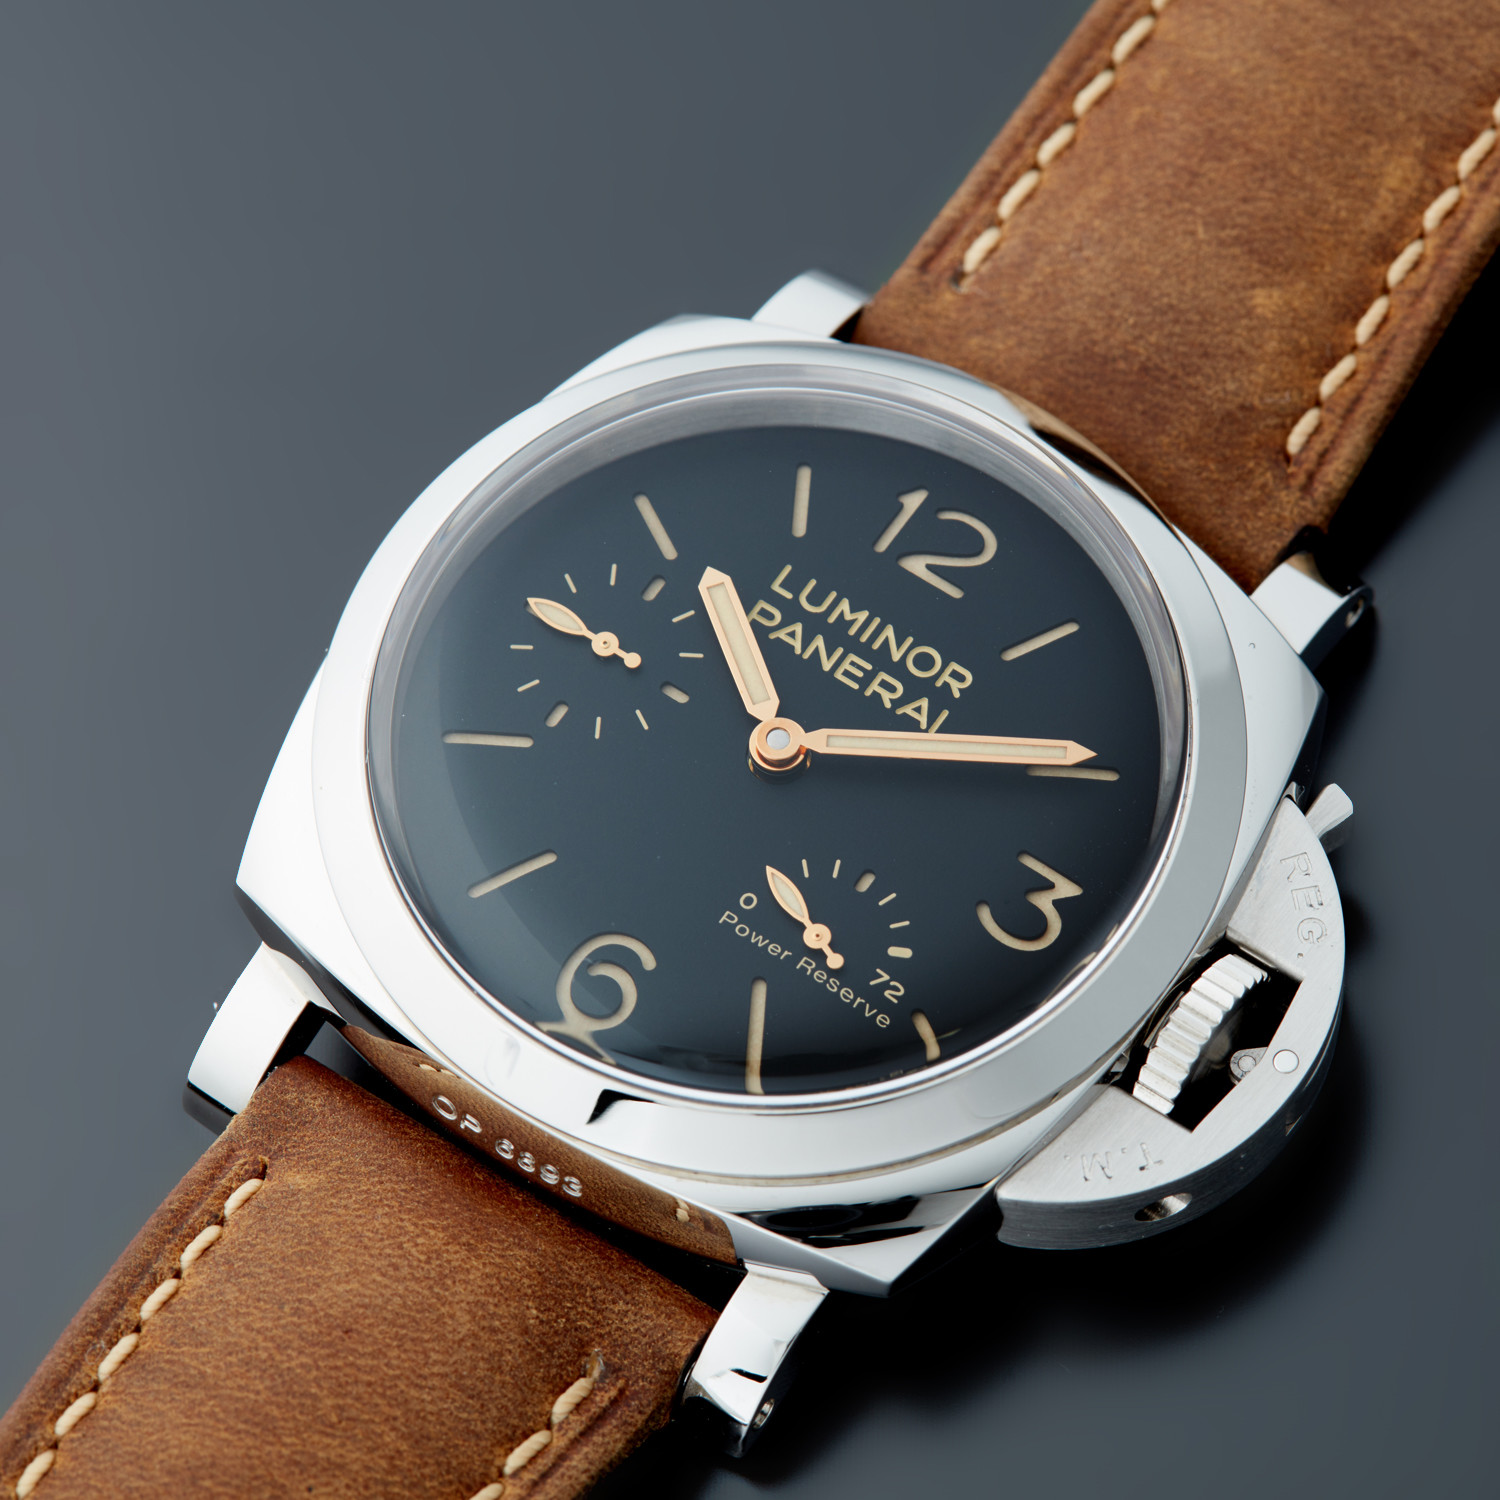 Panerai Luminor 1950 3 Days Power Reserve Acciaio // PAM 423 // 100020